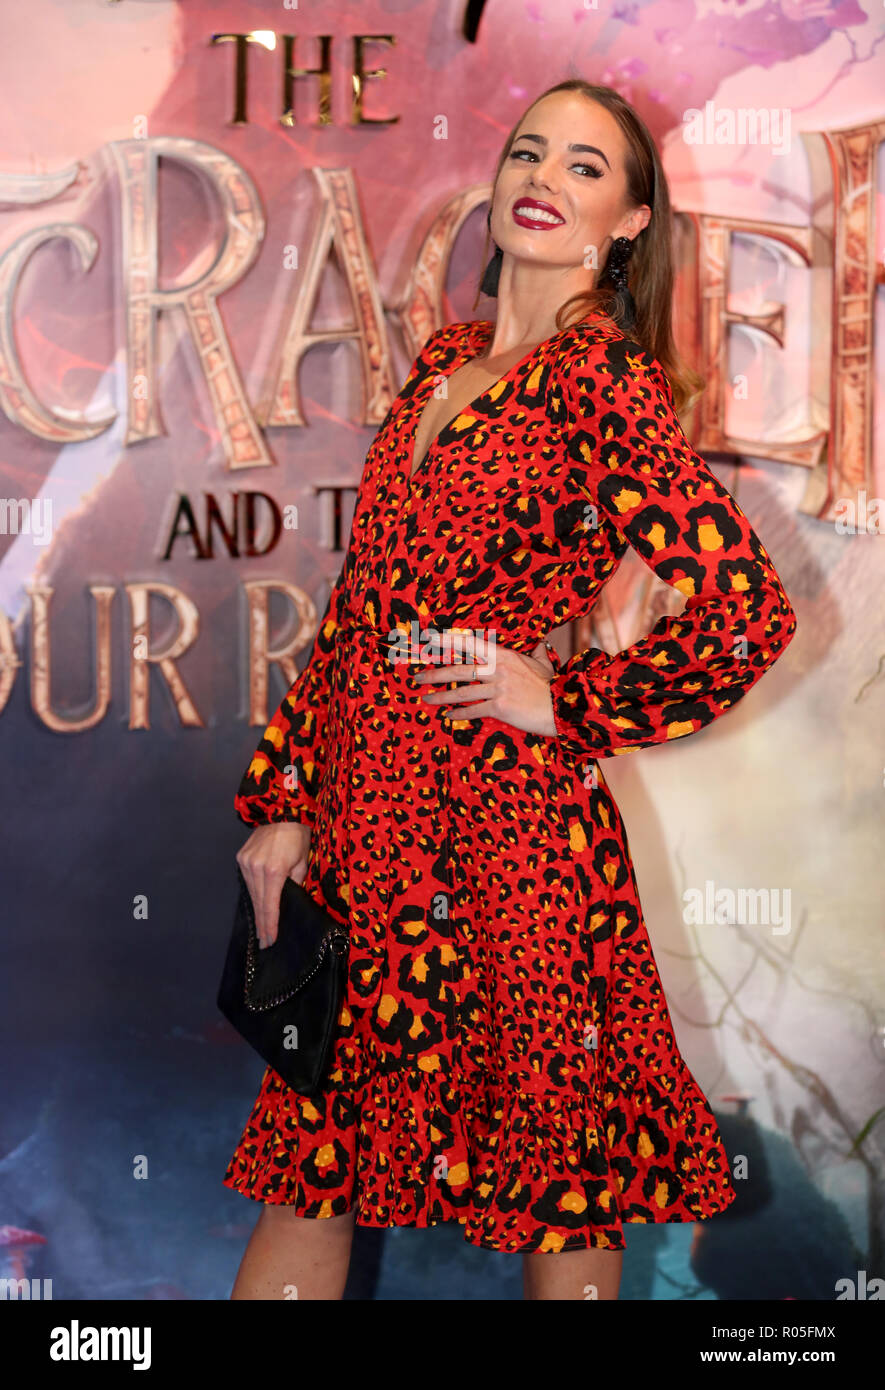 Emma Conybeare attending the European Premiere of The Nutcracker and the Four Realms held at the Vue, Westfield London. PRESS ASSOCIATION Photo. Picture date: Thursday November 1, 2018. Photo credit should read: David Parry/PA Wire - Stock Image